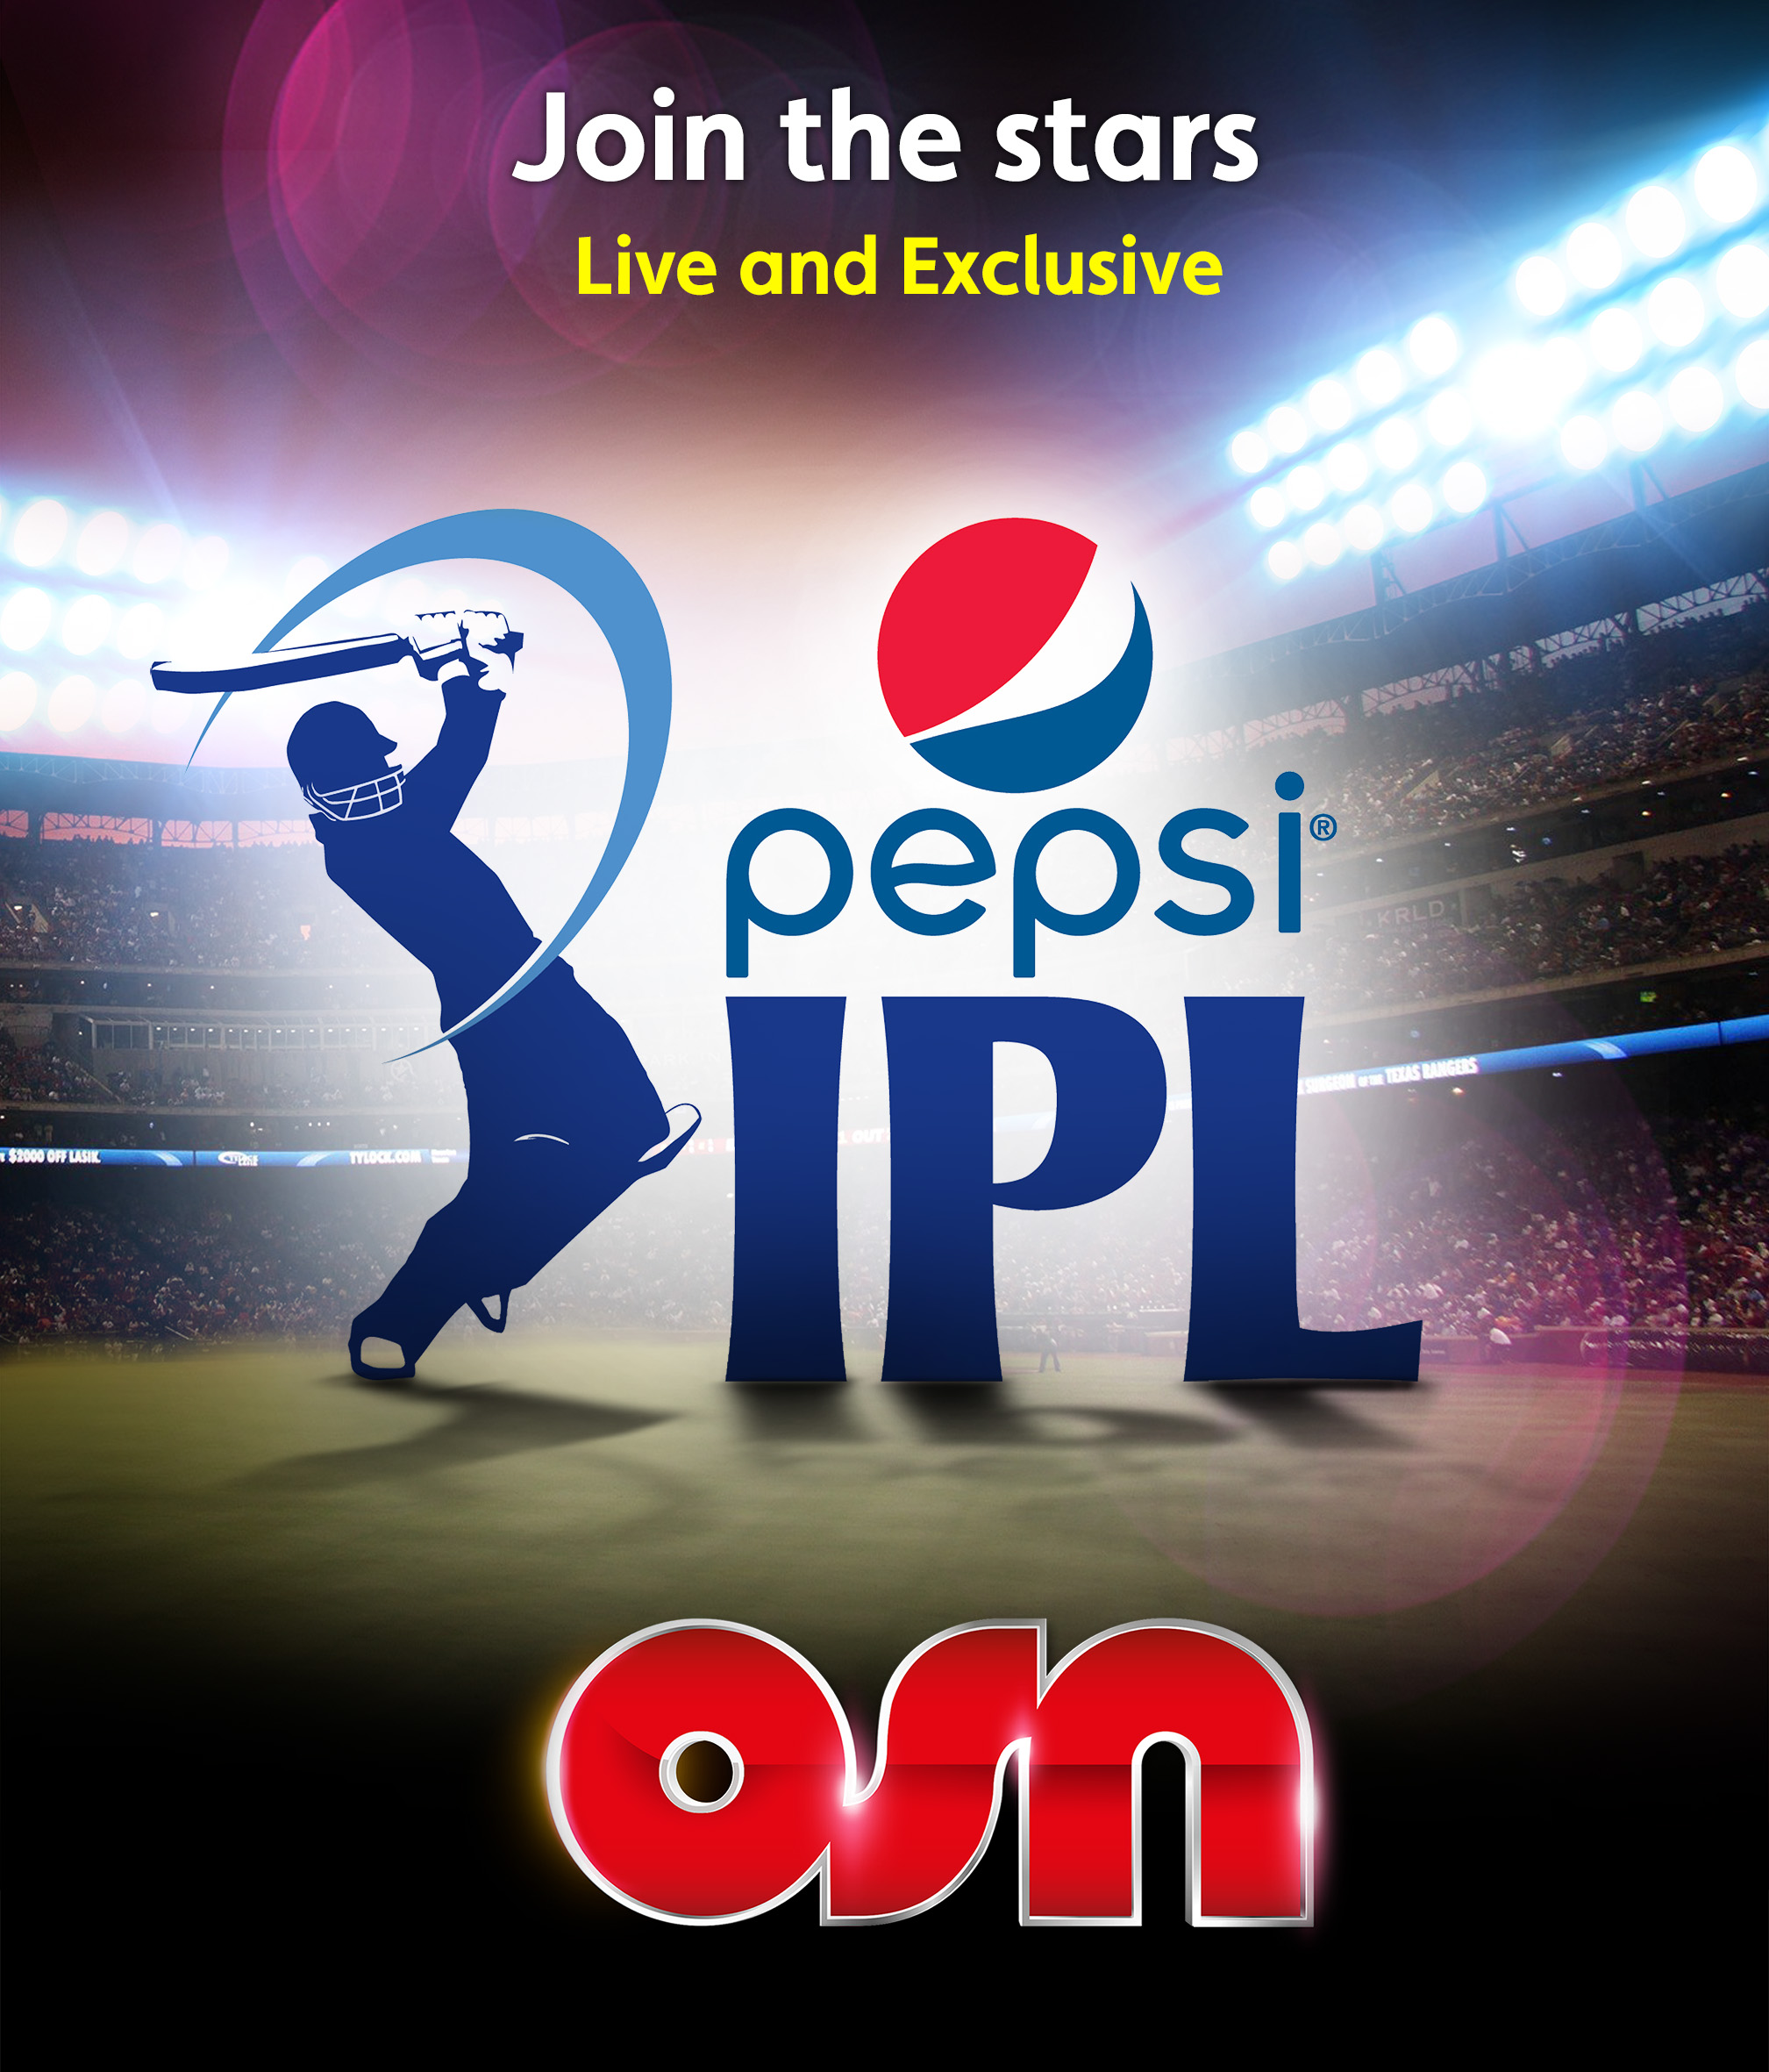 Non-stop cricket on OSN with exclusive broadcast of Indian Premier League matches from April 8